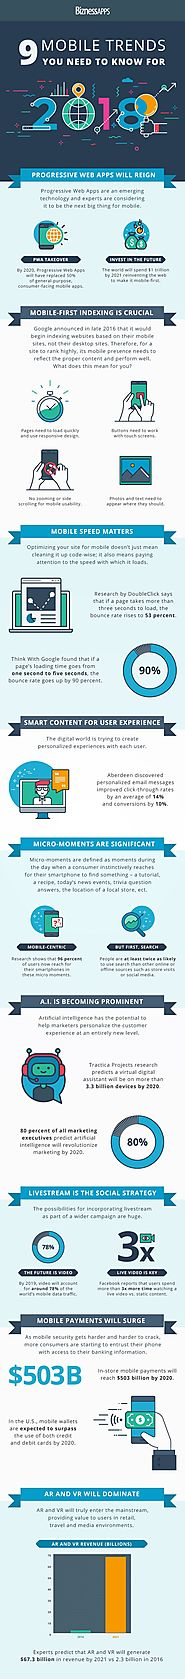 Pin by erin contact on DESIGN | Pinterest | Digital marketing, Digital and Infographic